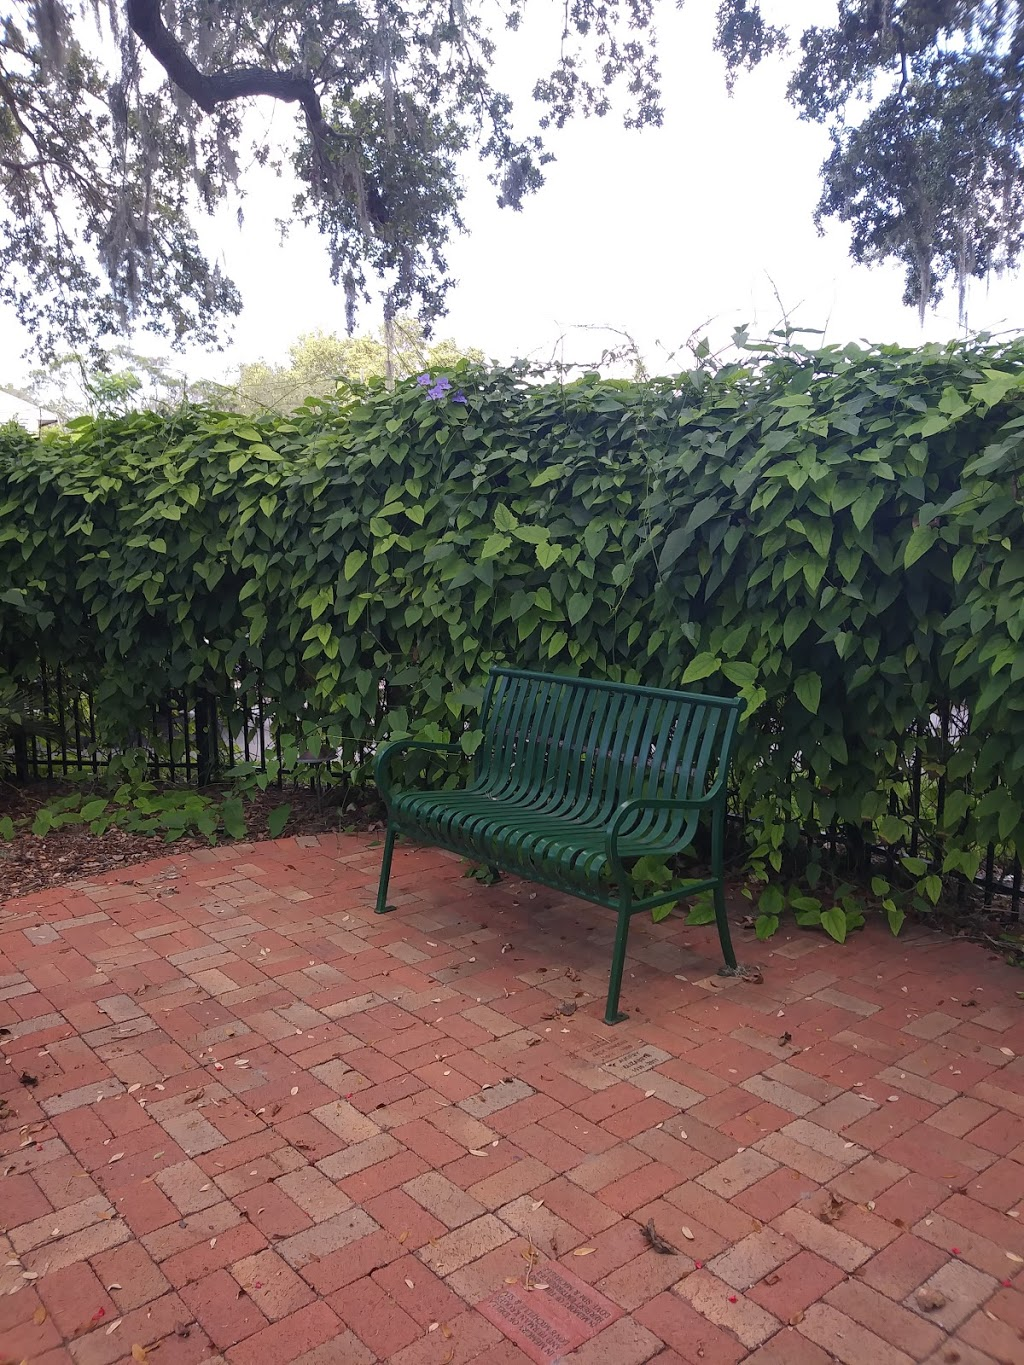 Gulfport Public Library - library    Photo 9 of 10   Address: 5501 28th Ave S, Gulfport, FL 33707, USA   Phone: (727) 893-1074